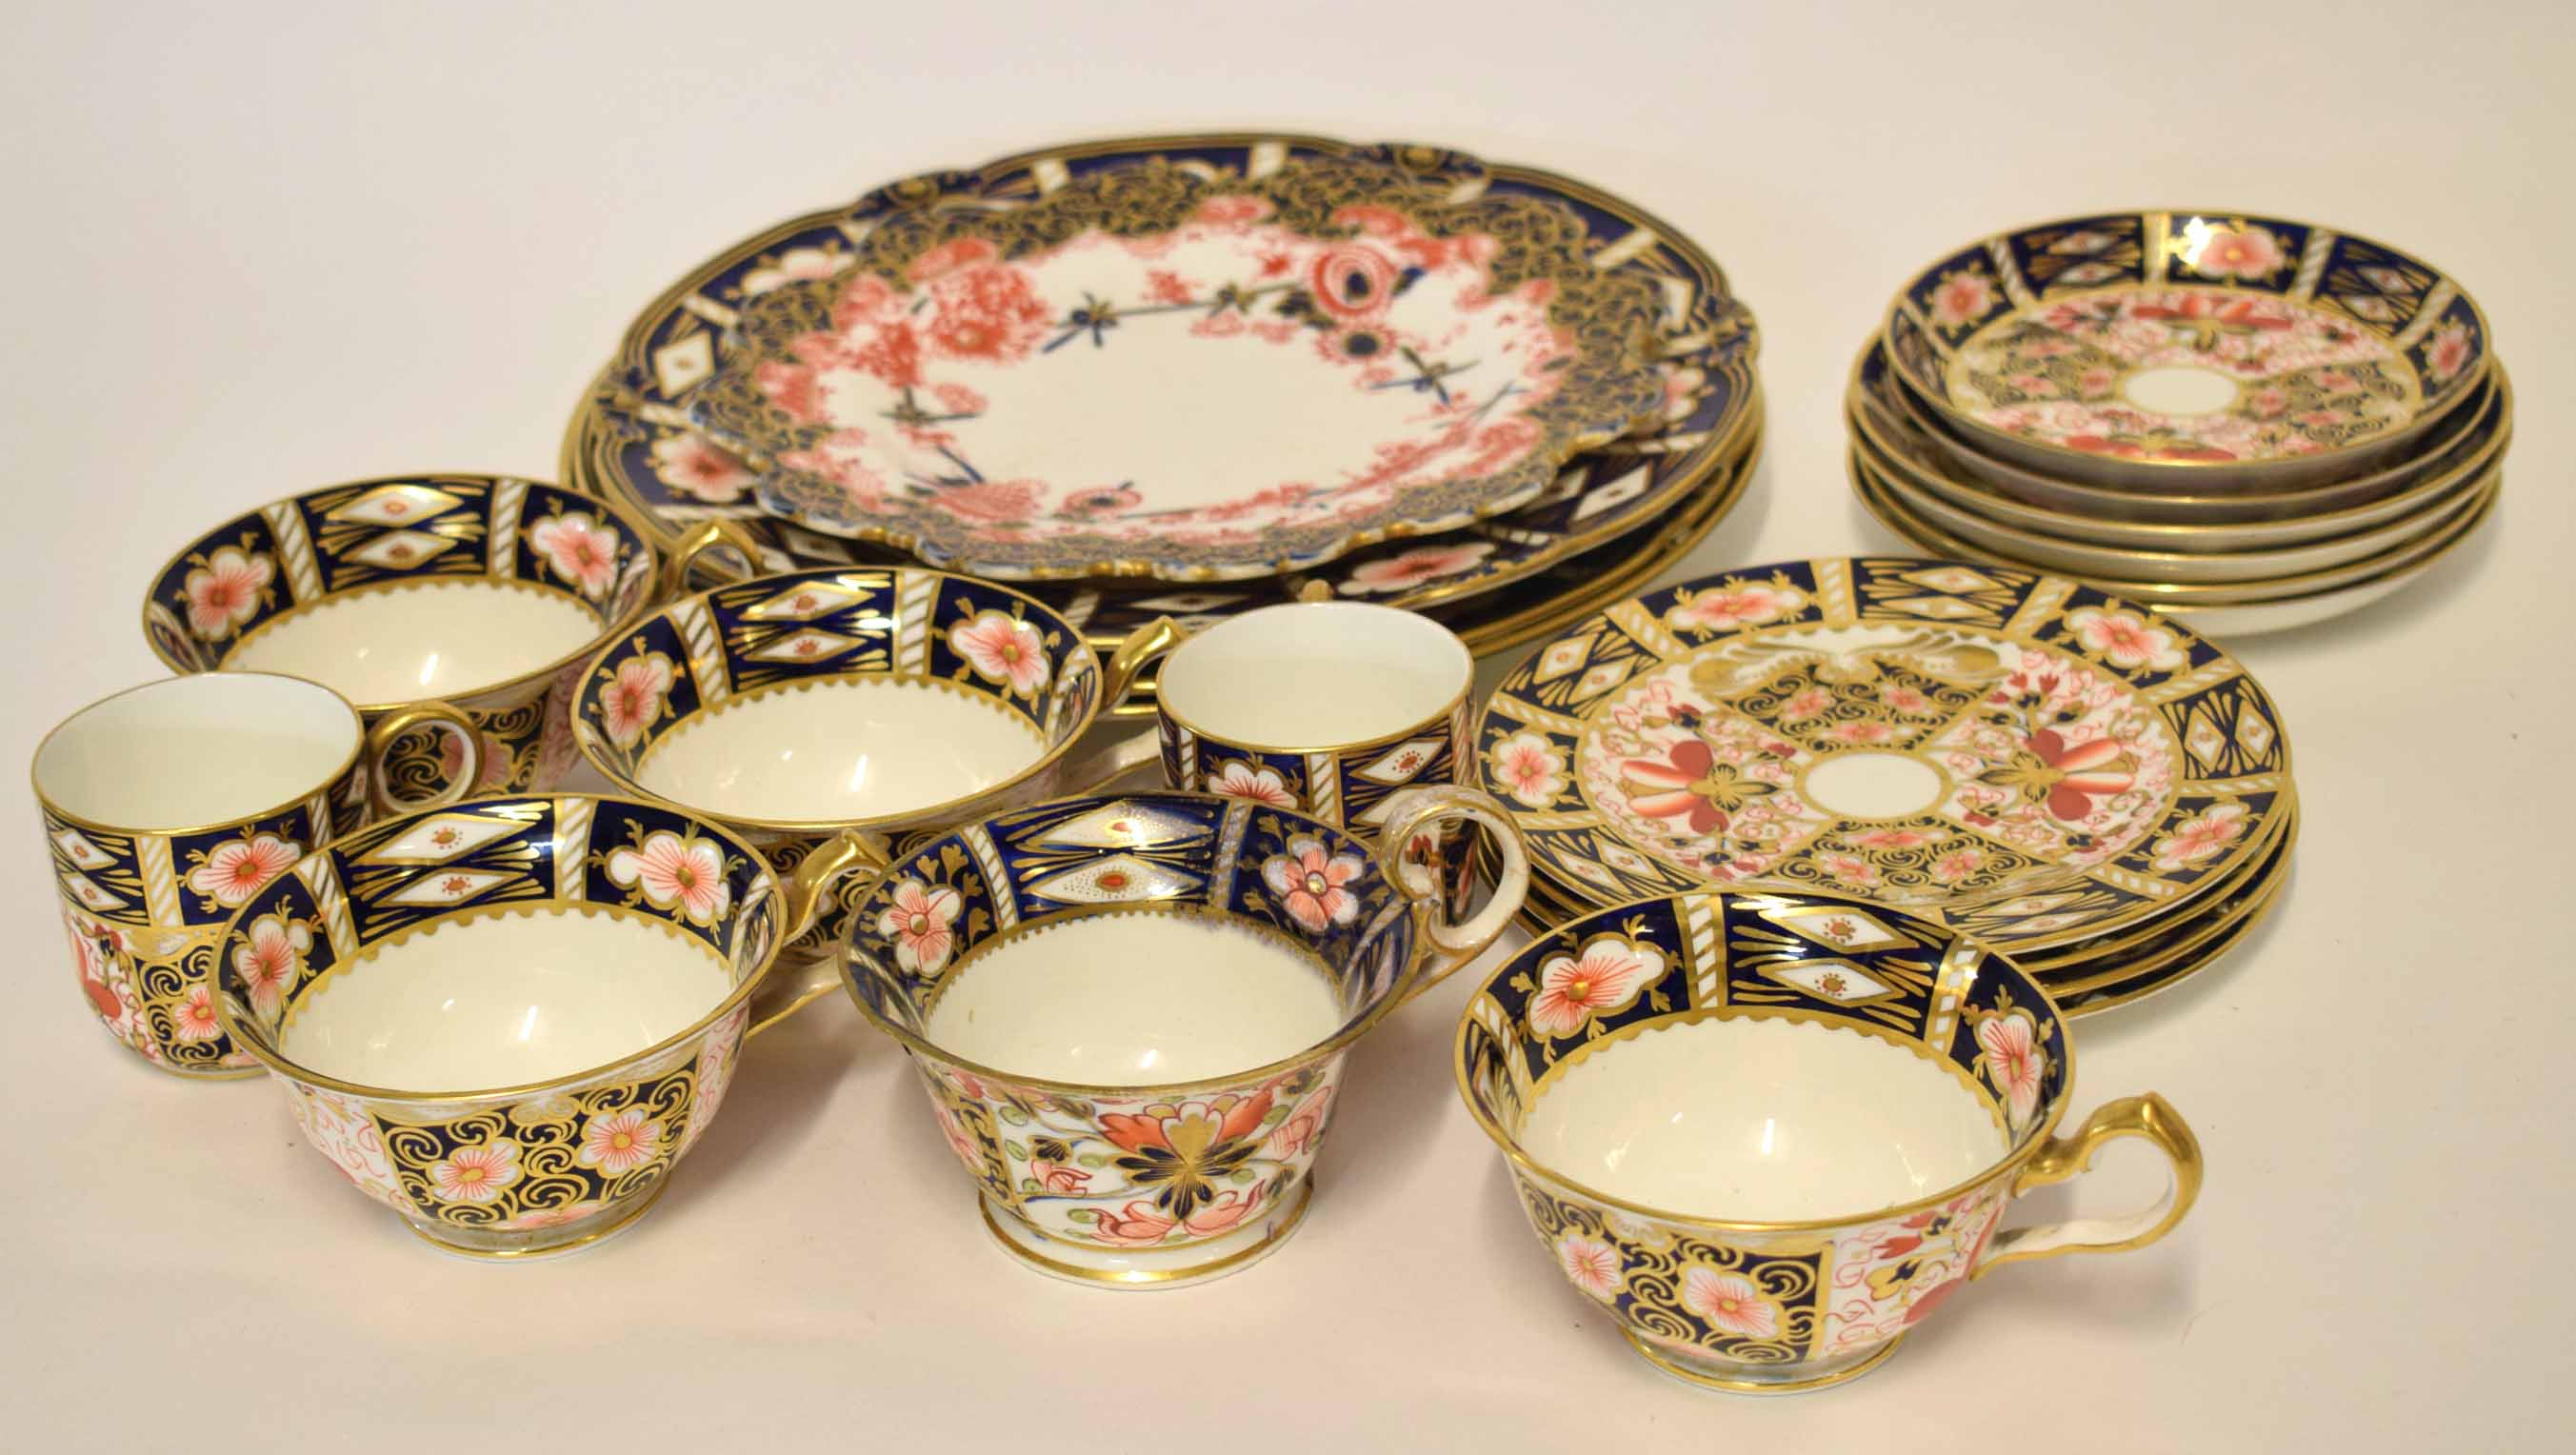 Lot 118 - Collection of Royal Crown Derby wares in Imari style comprising three large plates, a plate with